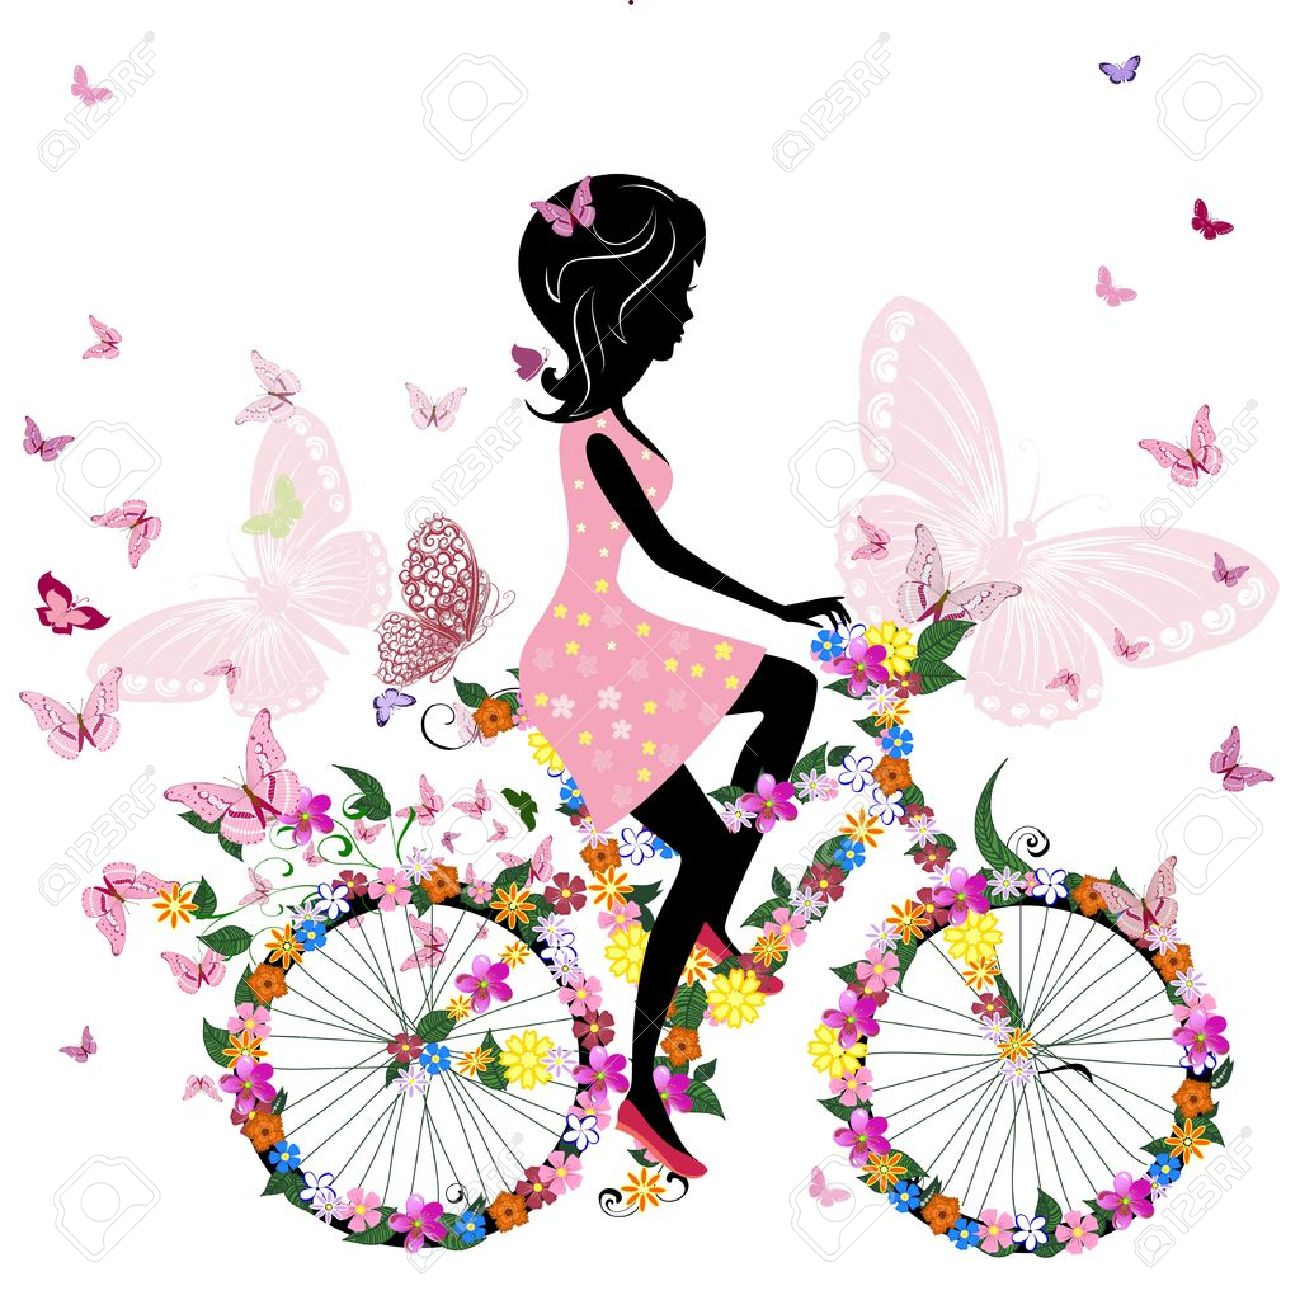 Girl on a bicycle with a romantic butterflies - 10531909